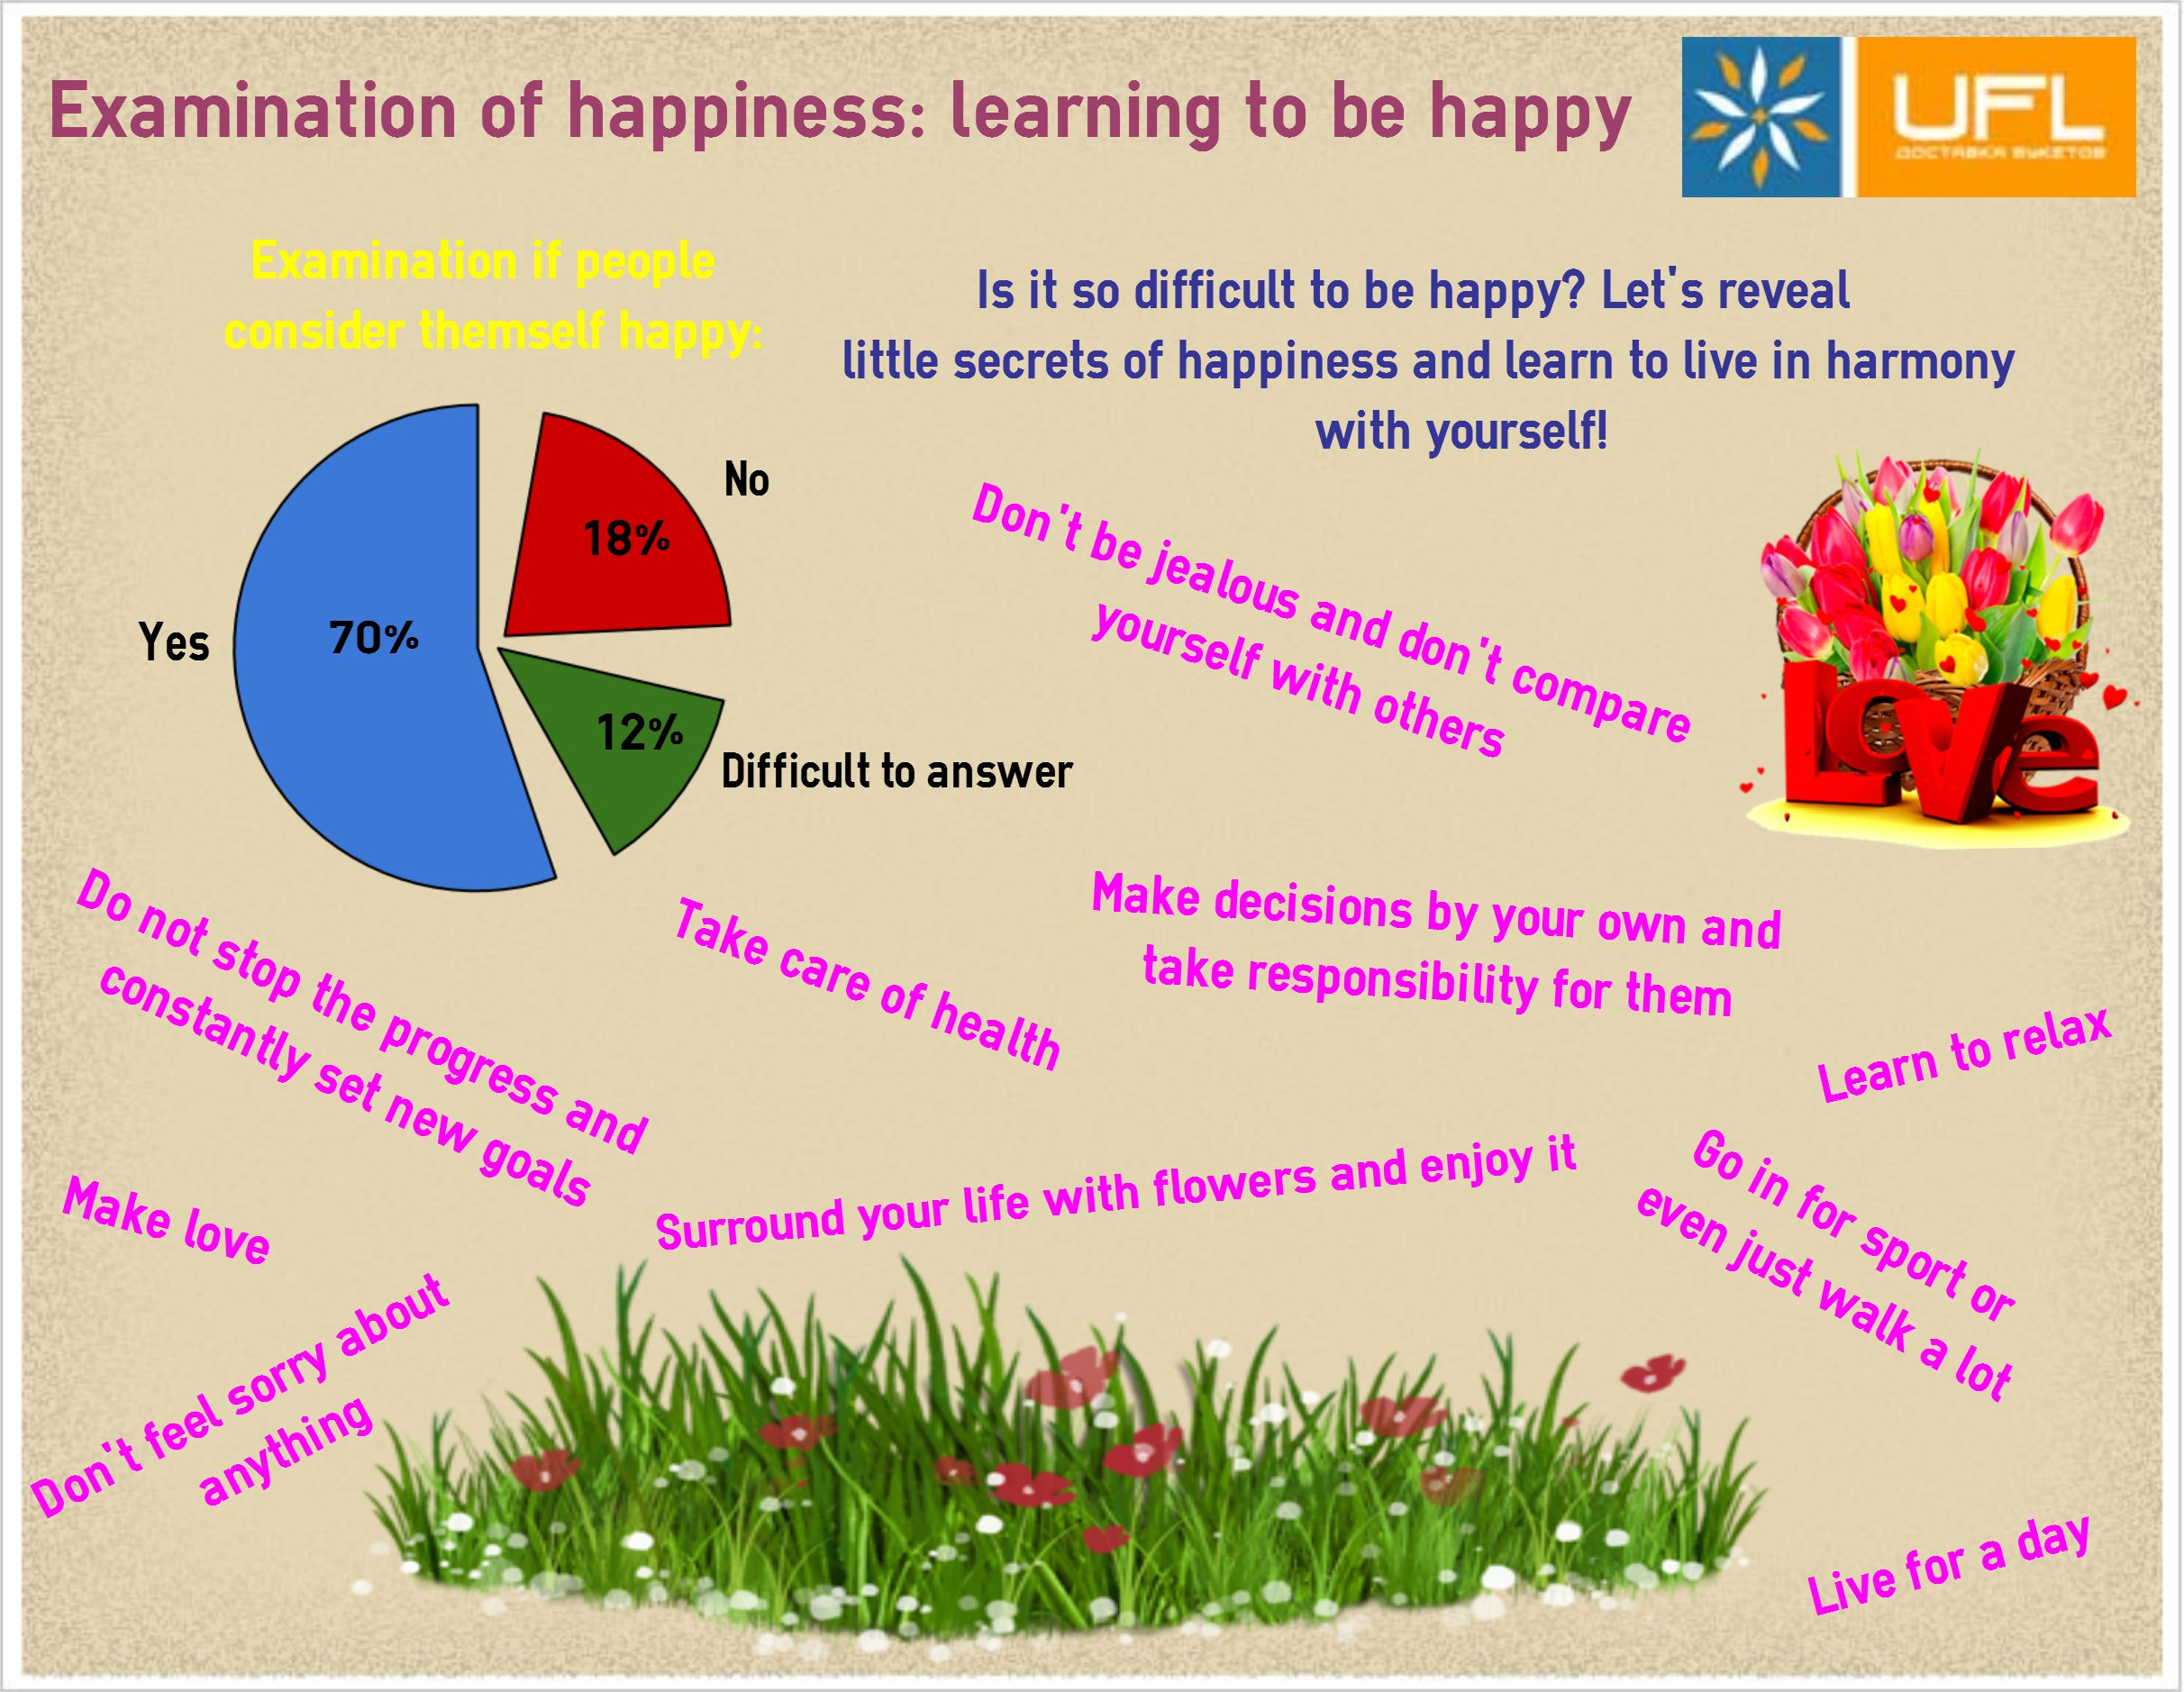 Examination of happiness: few steps to become a happy person